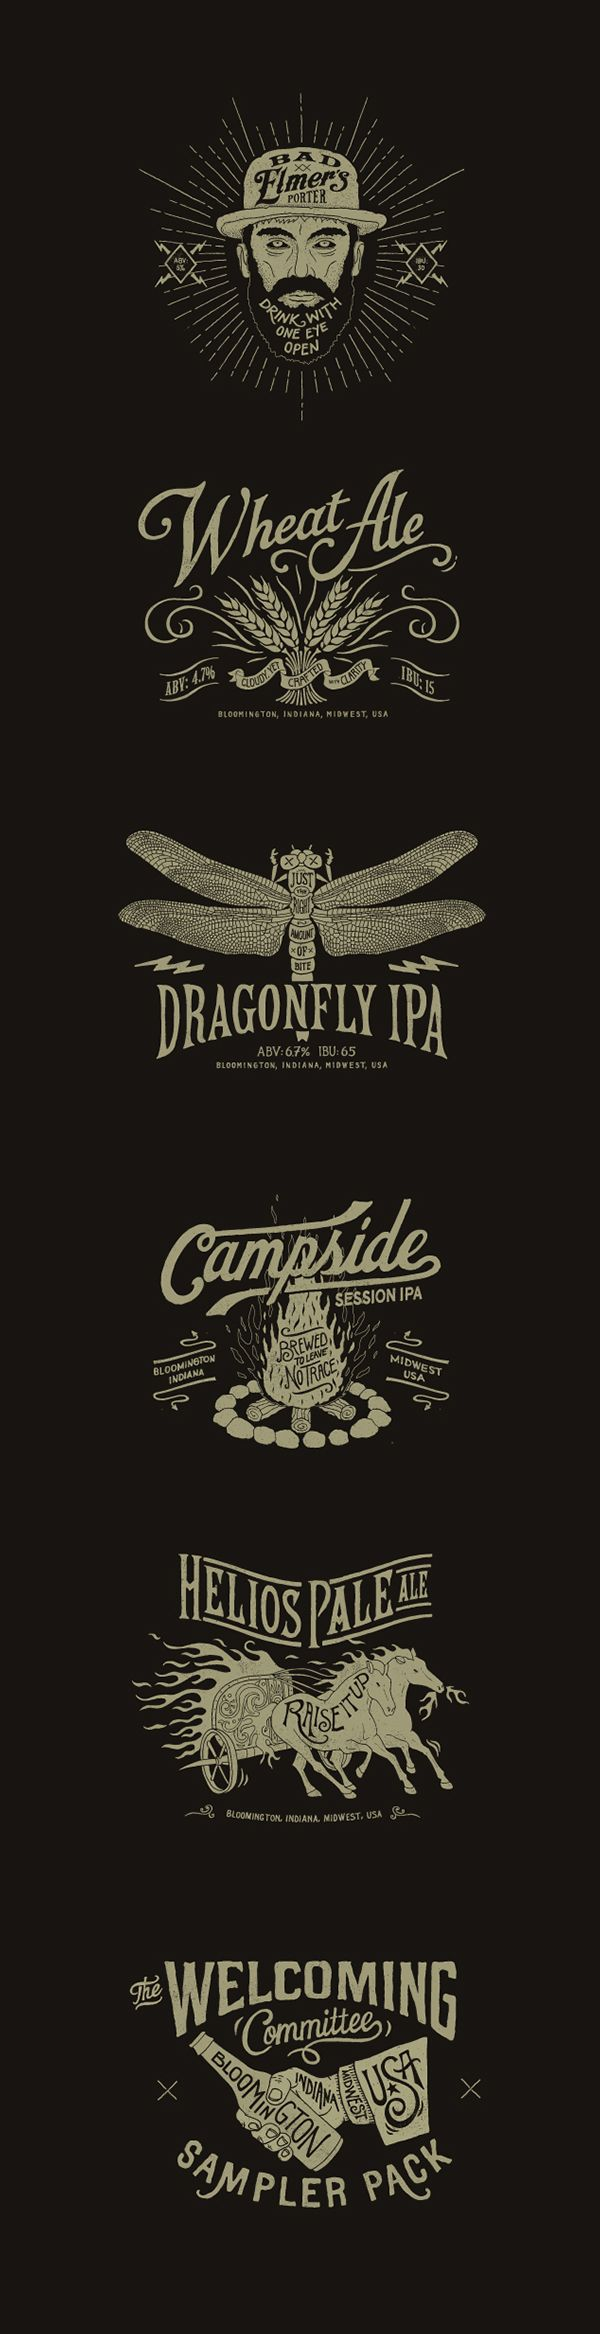 Love the dragonfly and campfire ones here.  These are all beer label artwork for different brews but have same feeling.  Some seem a bit too dark for my taste but I do like the edginess.  Love the handwritten feel throughout.  Love they can all stand on their own.